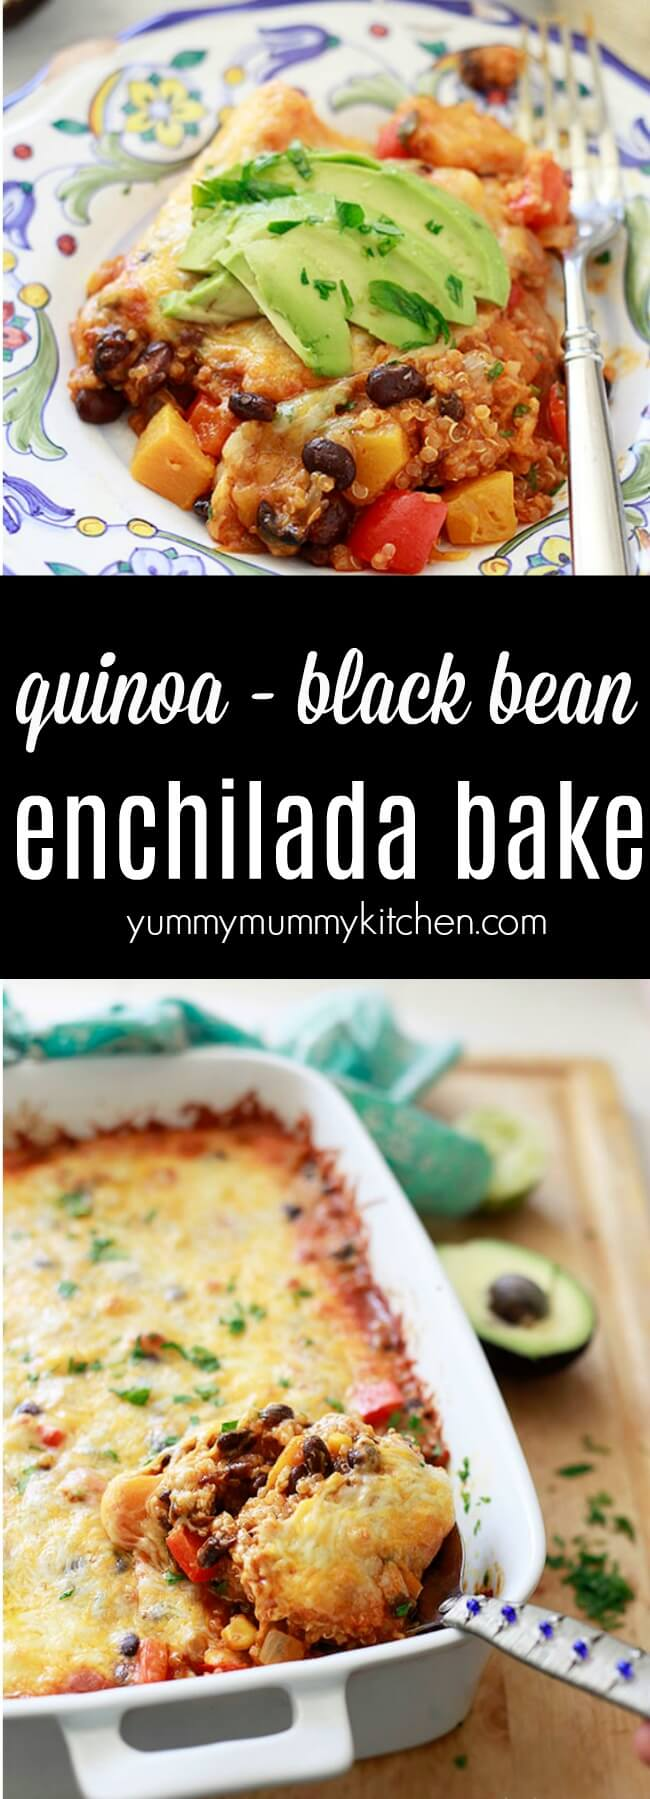 How to make a healthy vegetarian Mexican quinoa enchilada bake casserole with black beans and butternut squash. Quinoa enchilada bake is a delicious vegetarian family dinner.